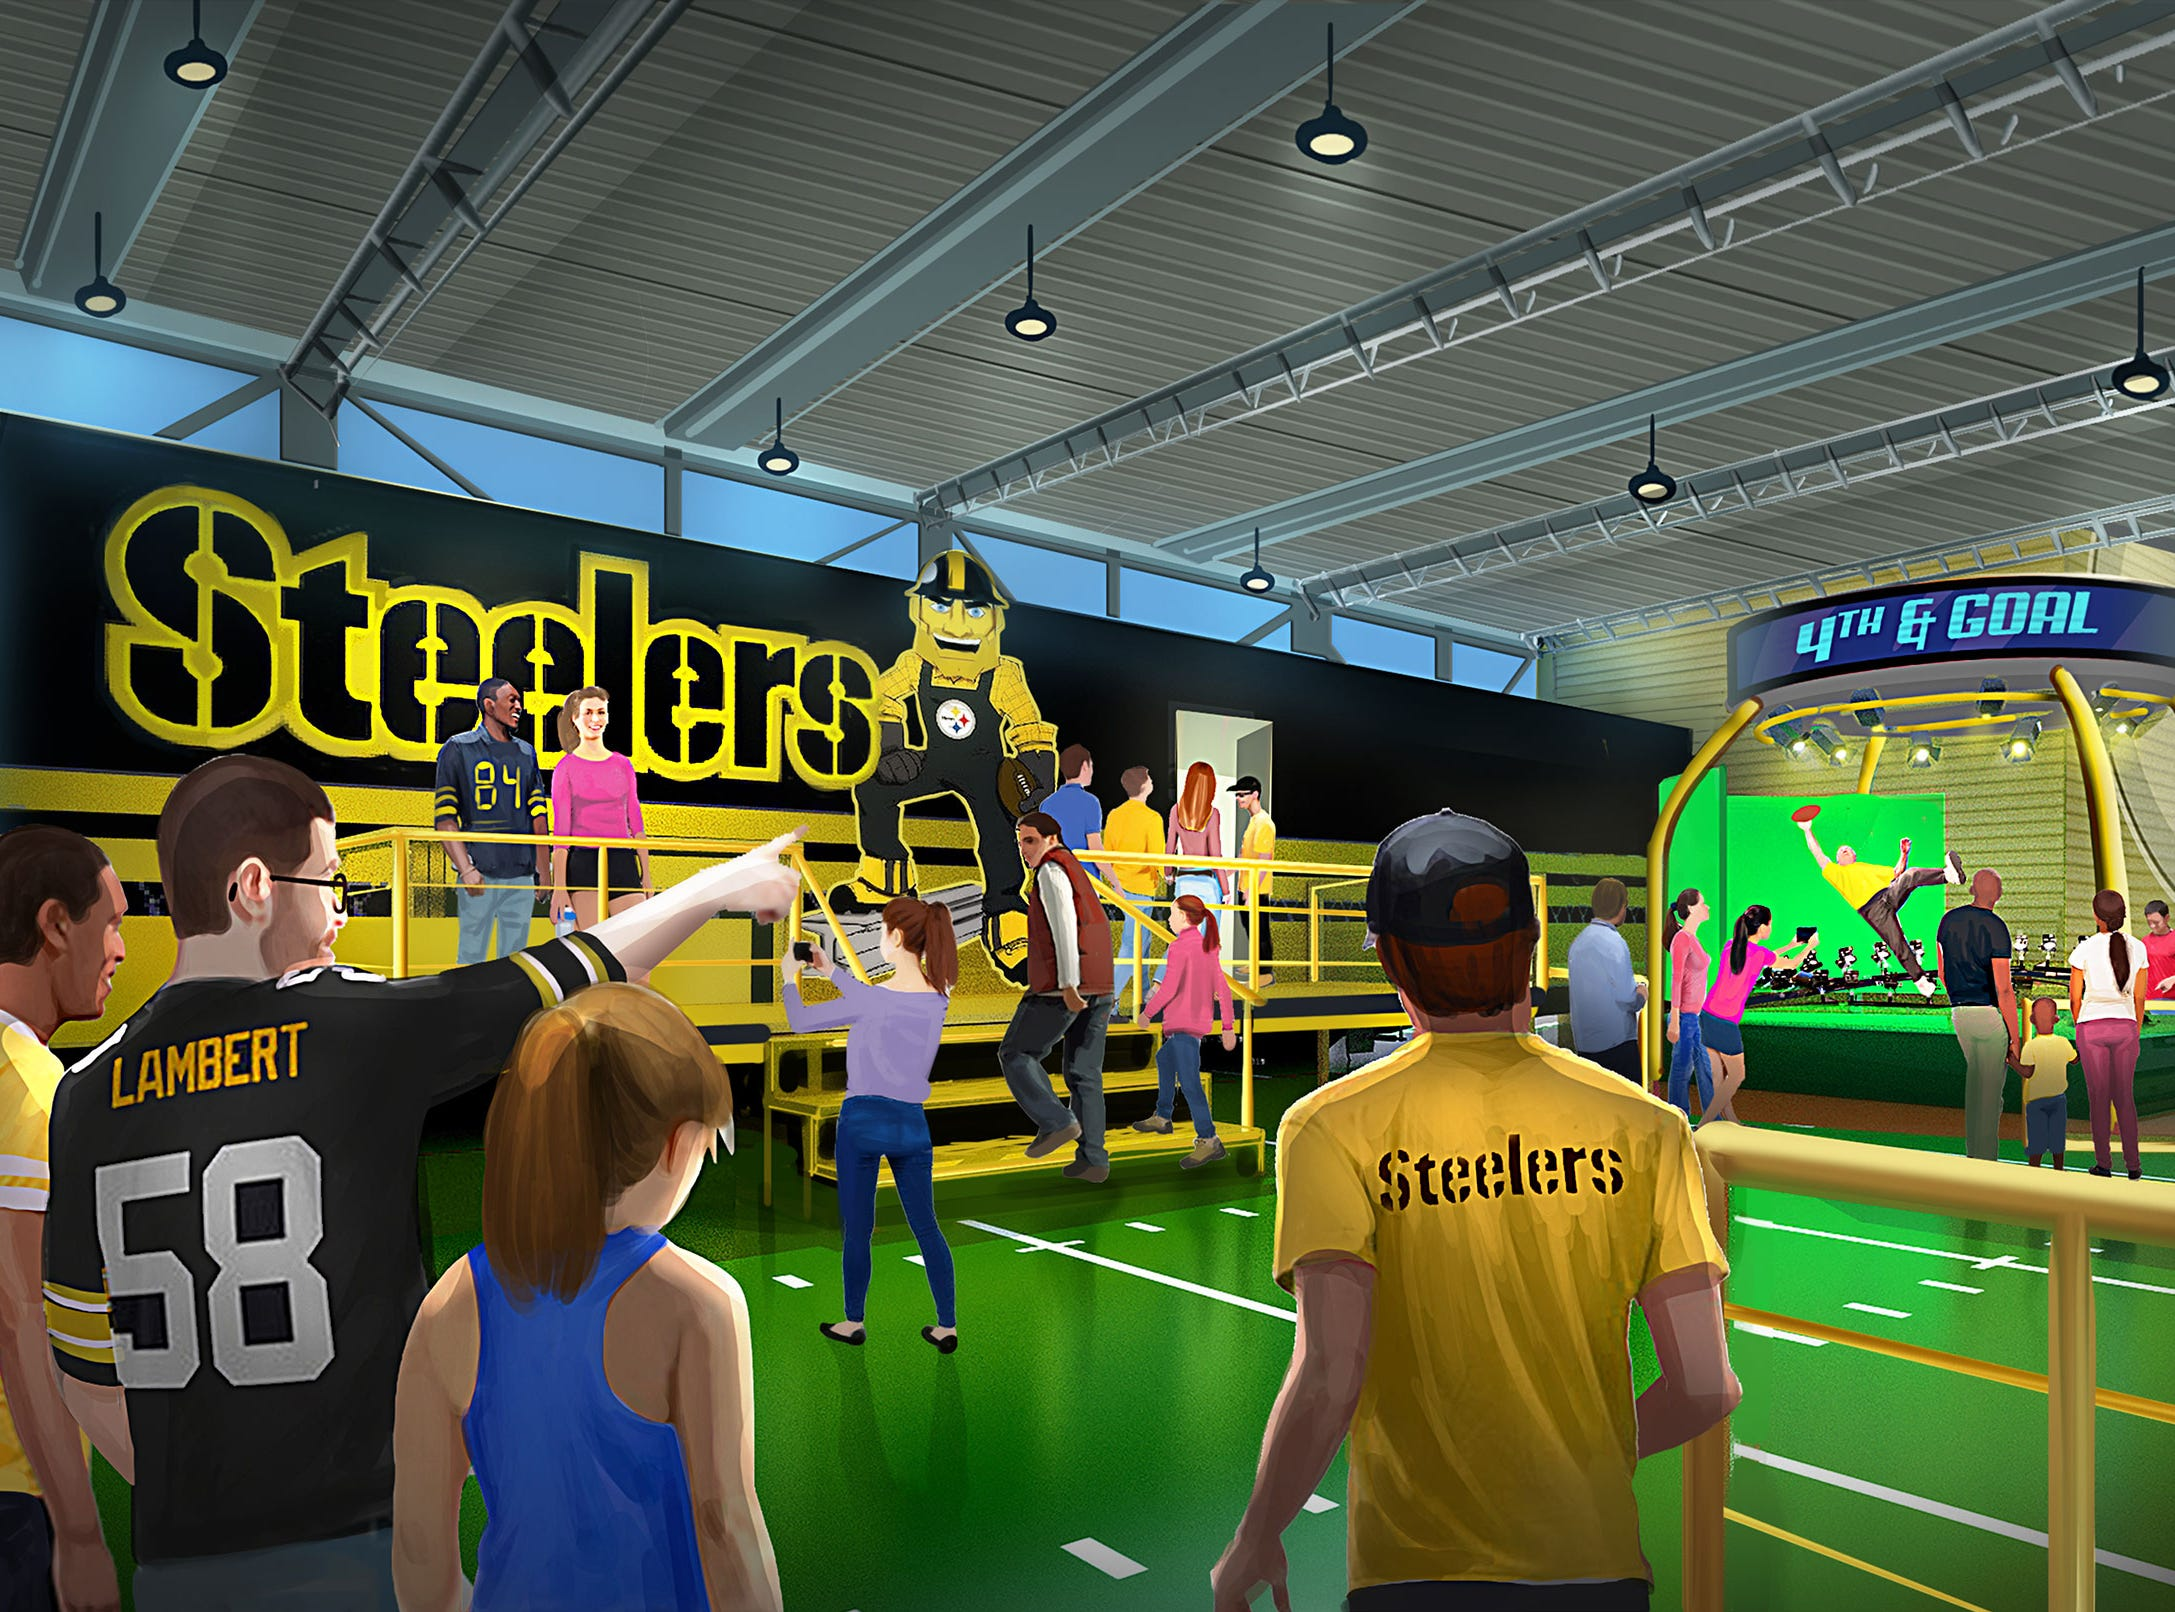 The highly anticipated Steel Curtain roller coaster will be part of a new football-focused land called, aptly enough, Steelers Country.